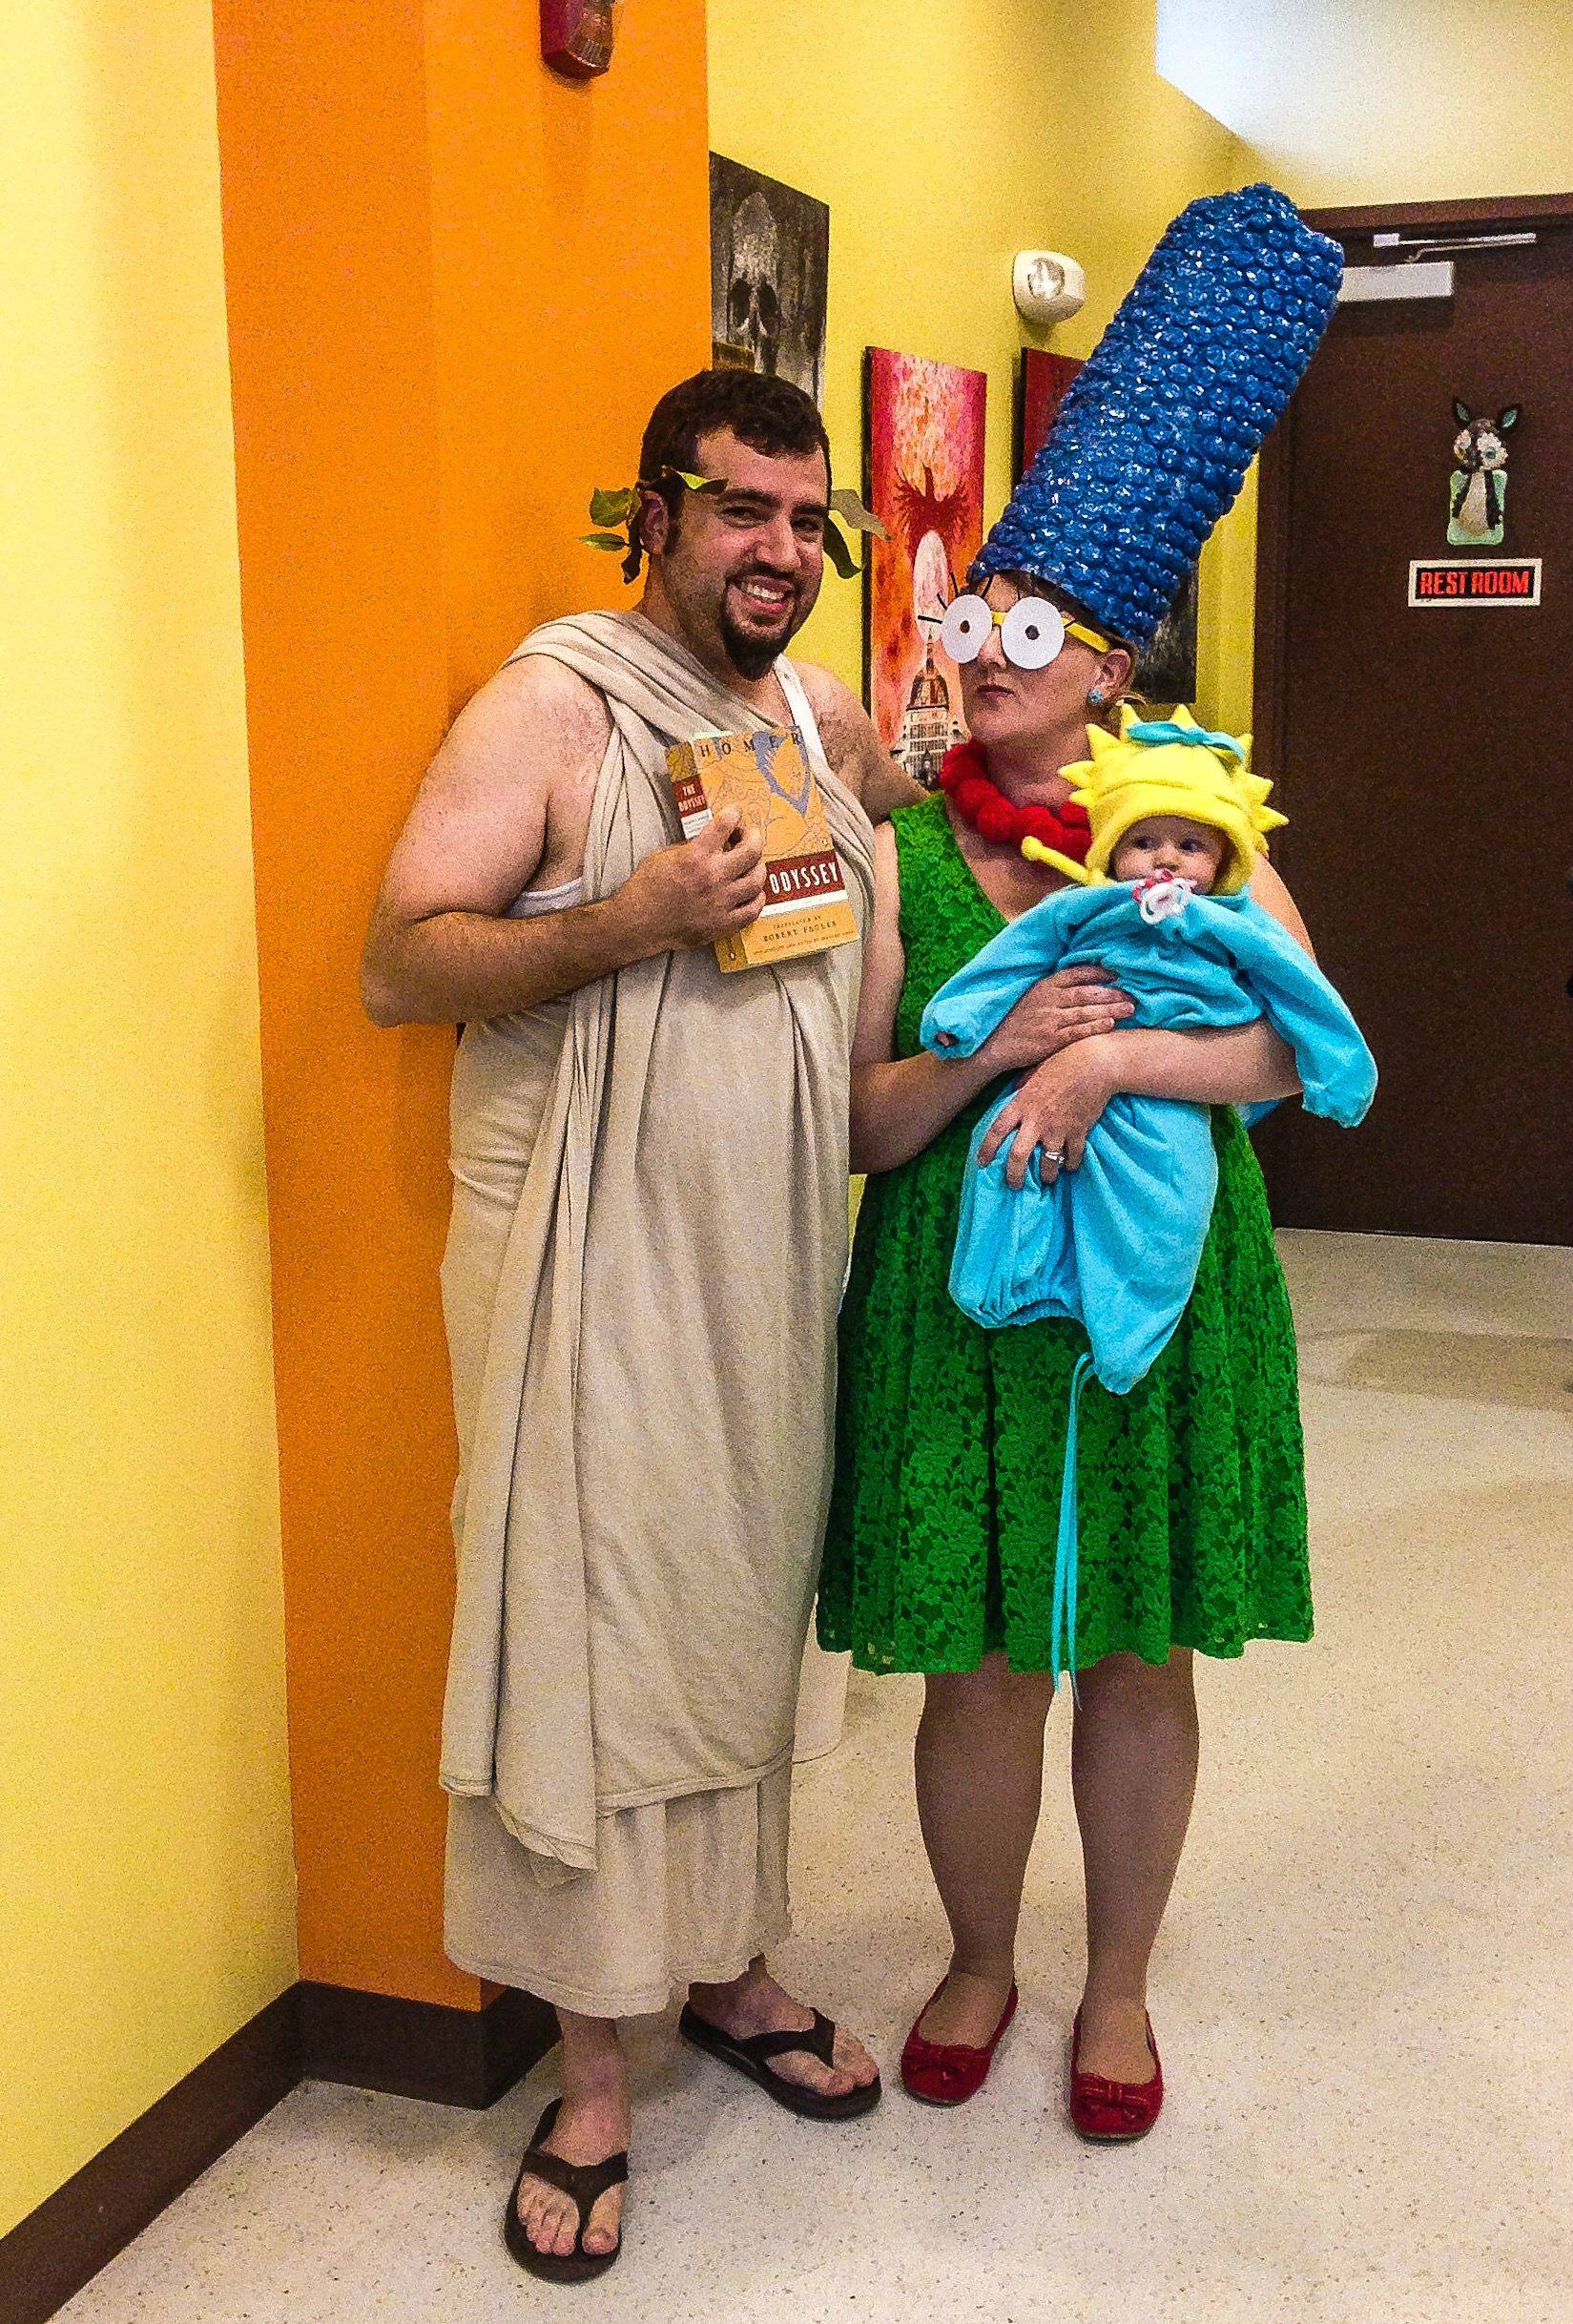 26 super-clever and punny costumes to make you smile